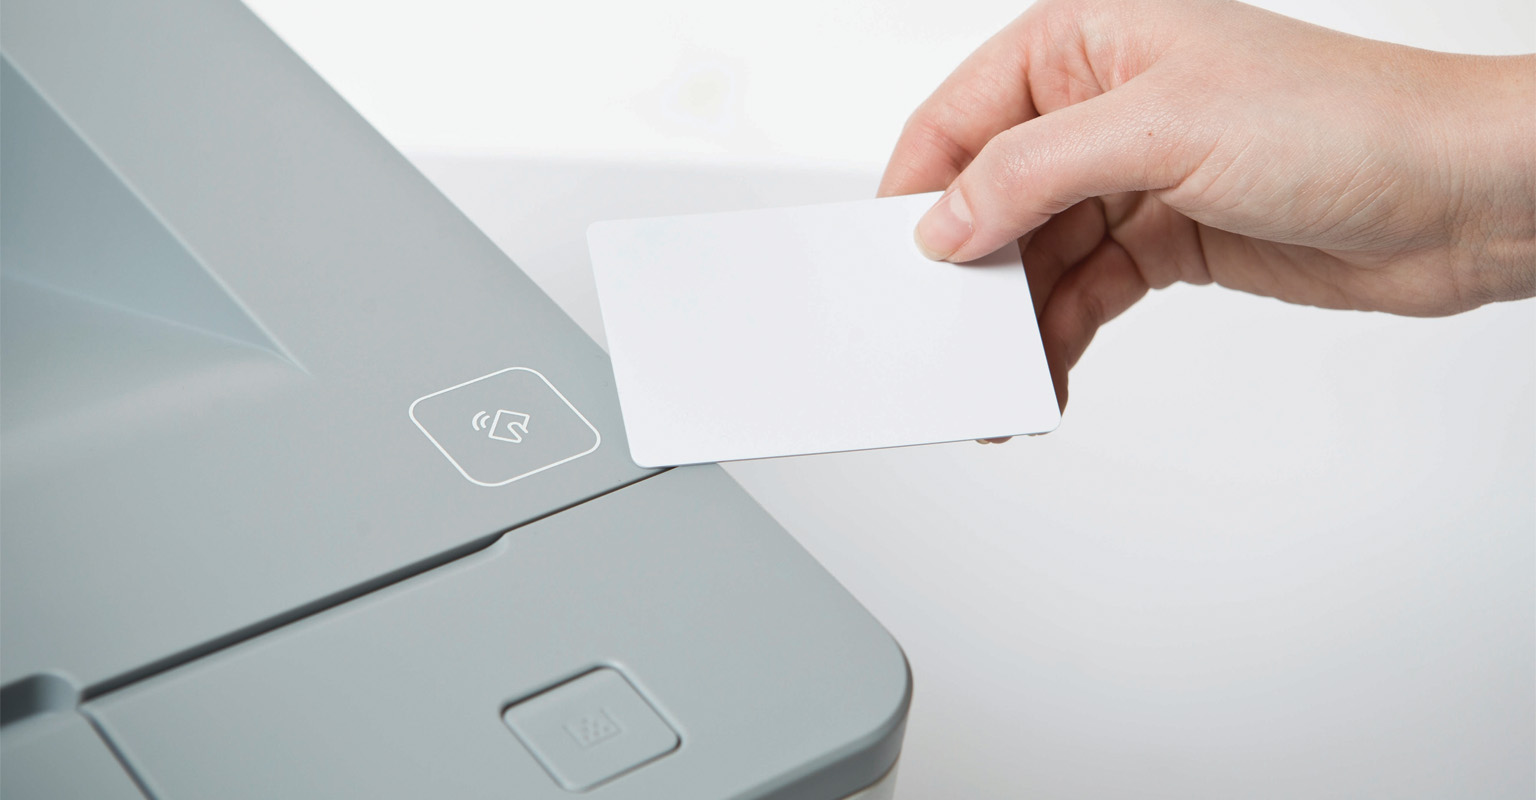 Swiping an ID card to login to a printer